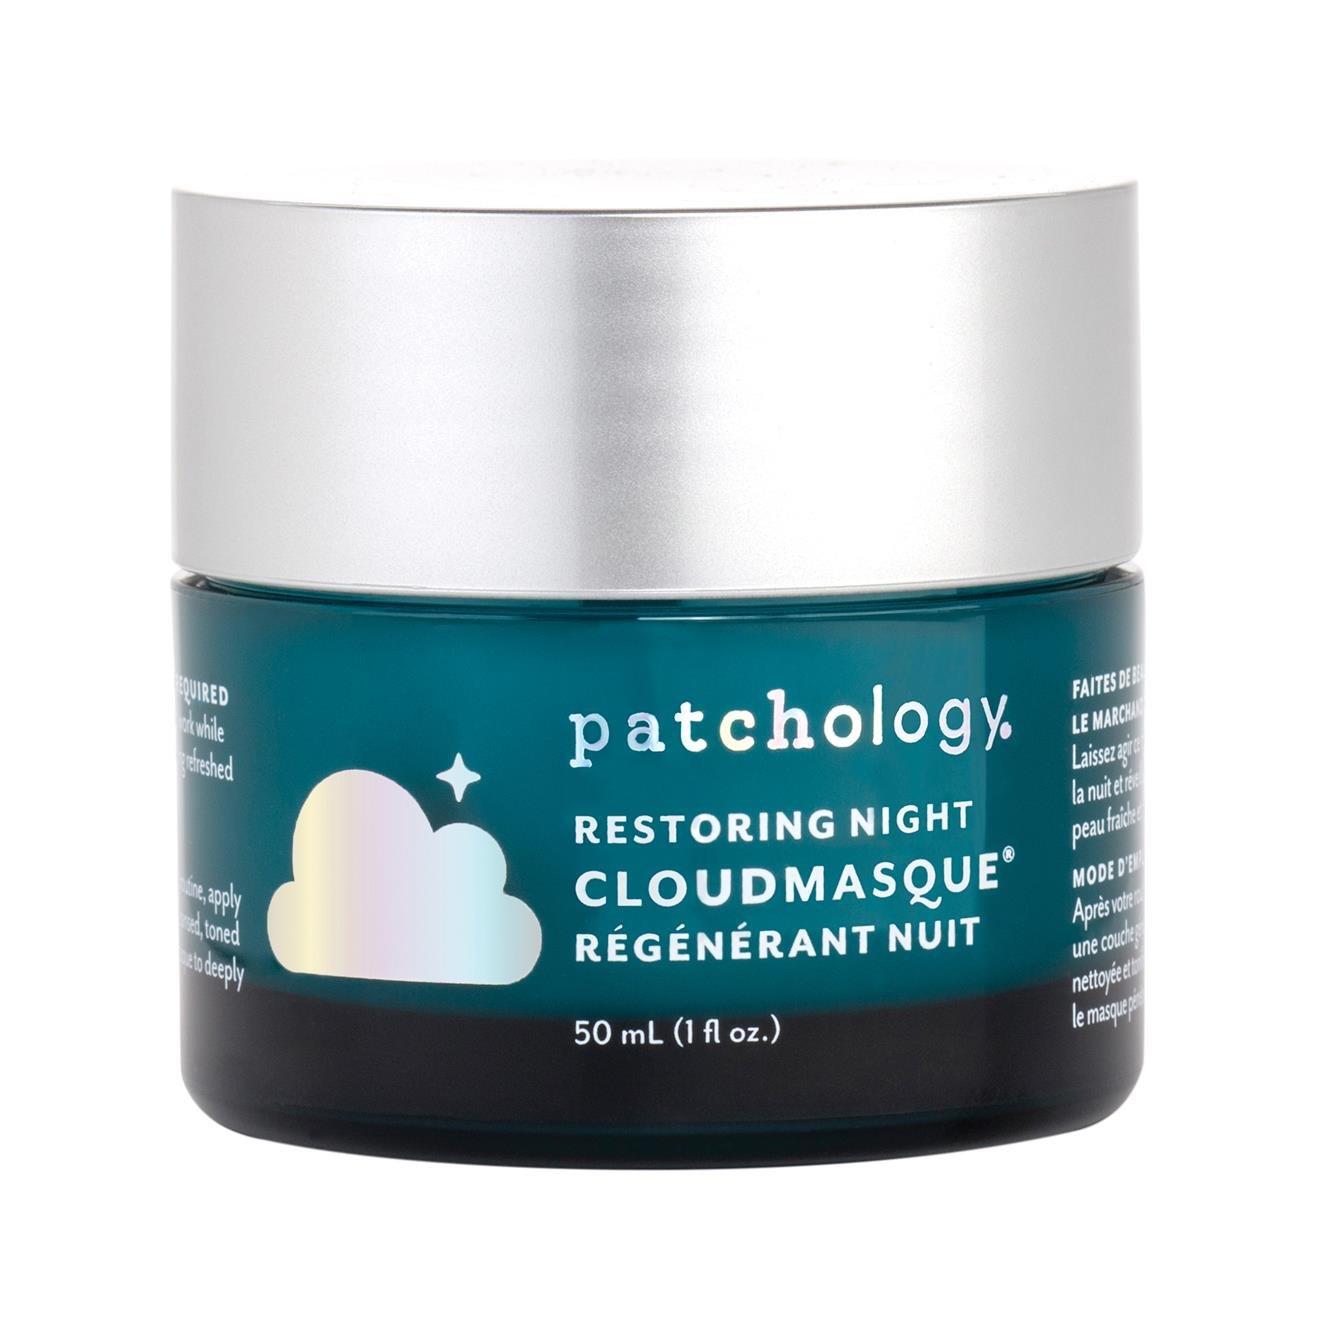 Patchology Restoring Night Cloud Masque